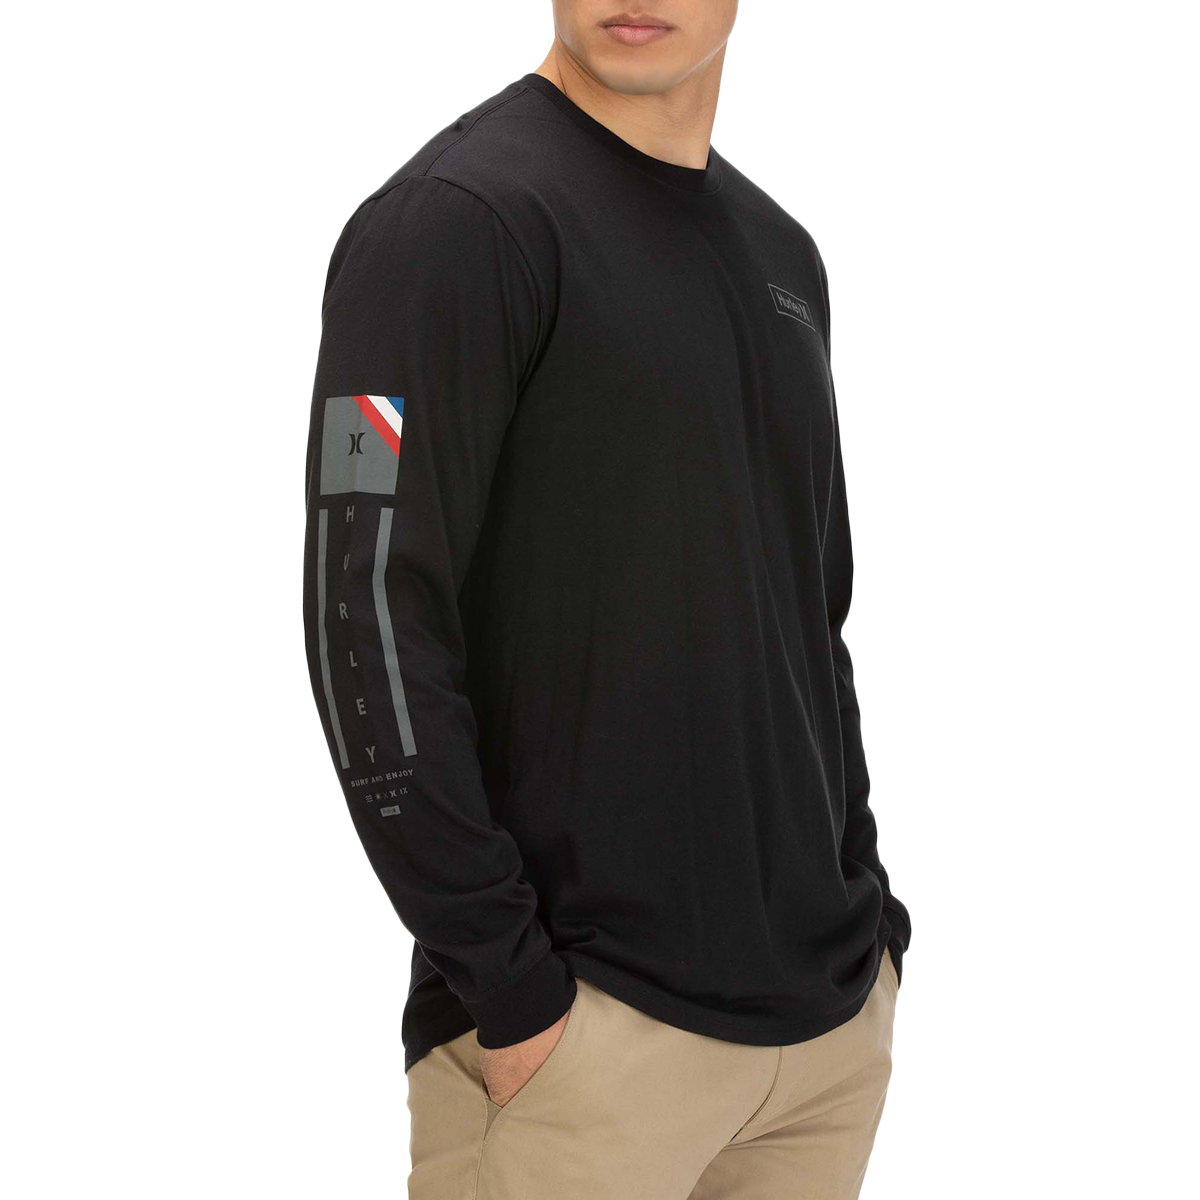 Hurley Men's Premium Fit Right Arm Long-Sleeve Tee - Black, L